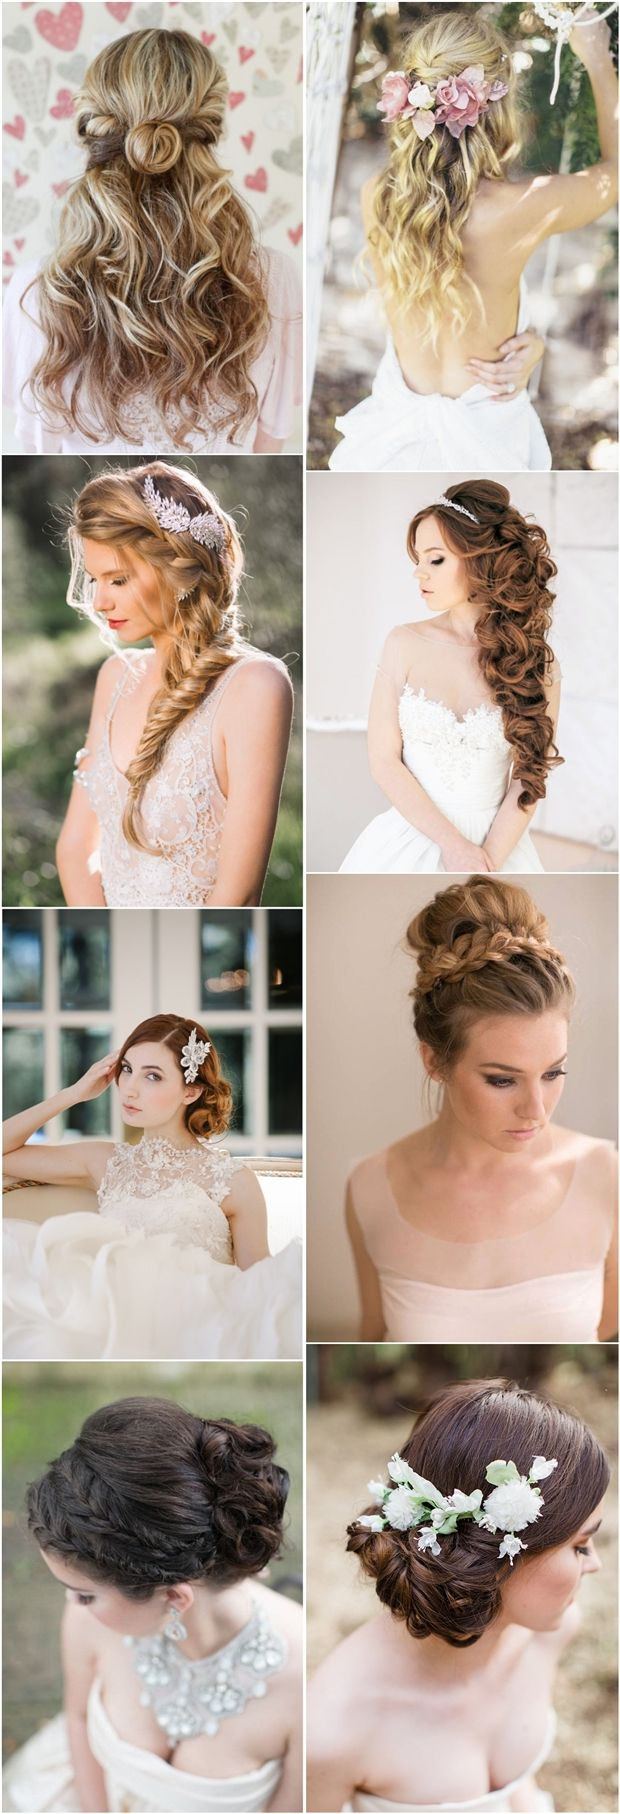 20 fabulous wedding hairstyles for every bride | updos, weddings